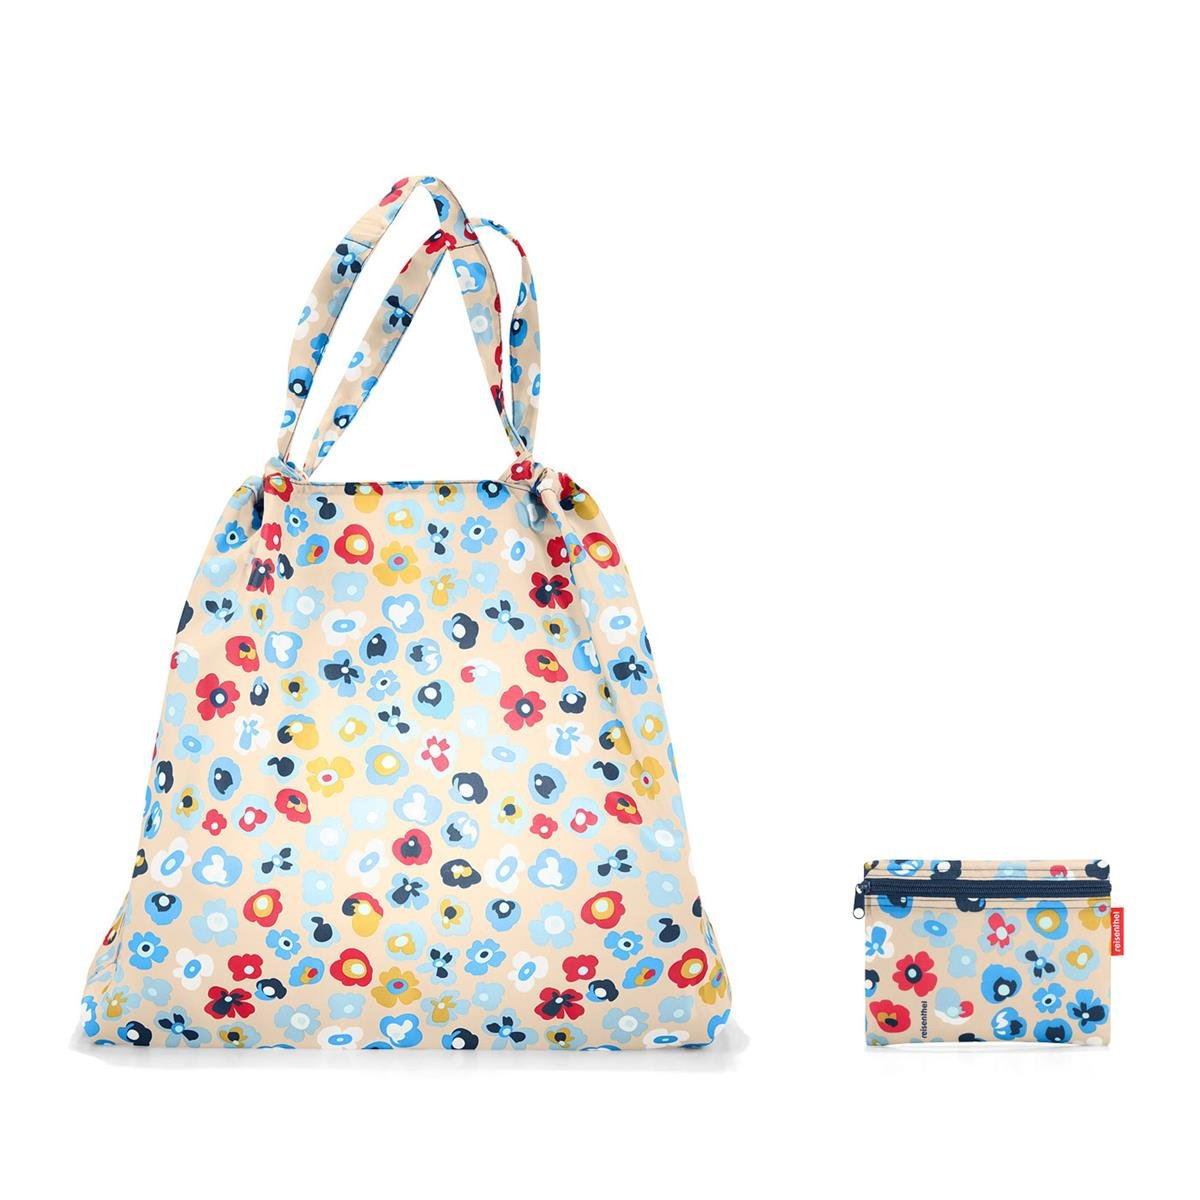 64 x 48 x 13 cm//volume 25 l//washable at 30 /°C Reisenthel mini maxi loftbag millefleurs dimensions